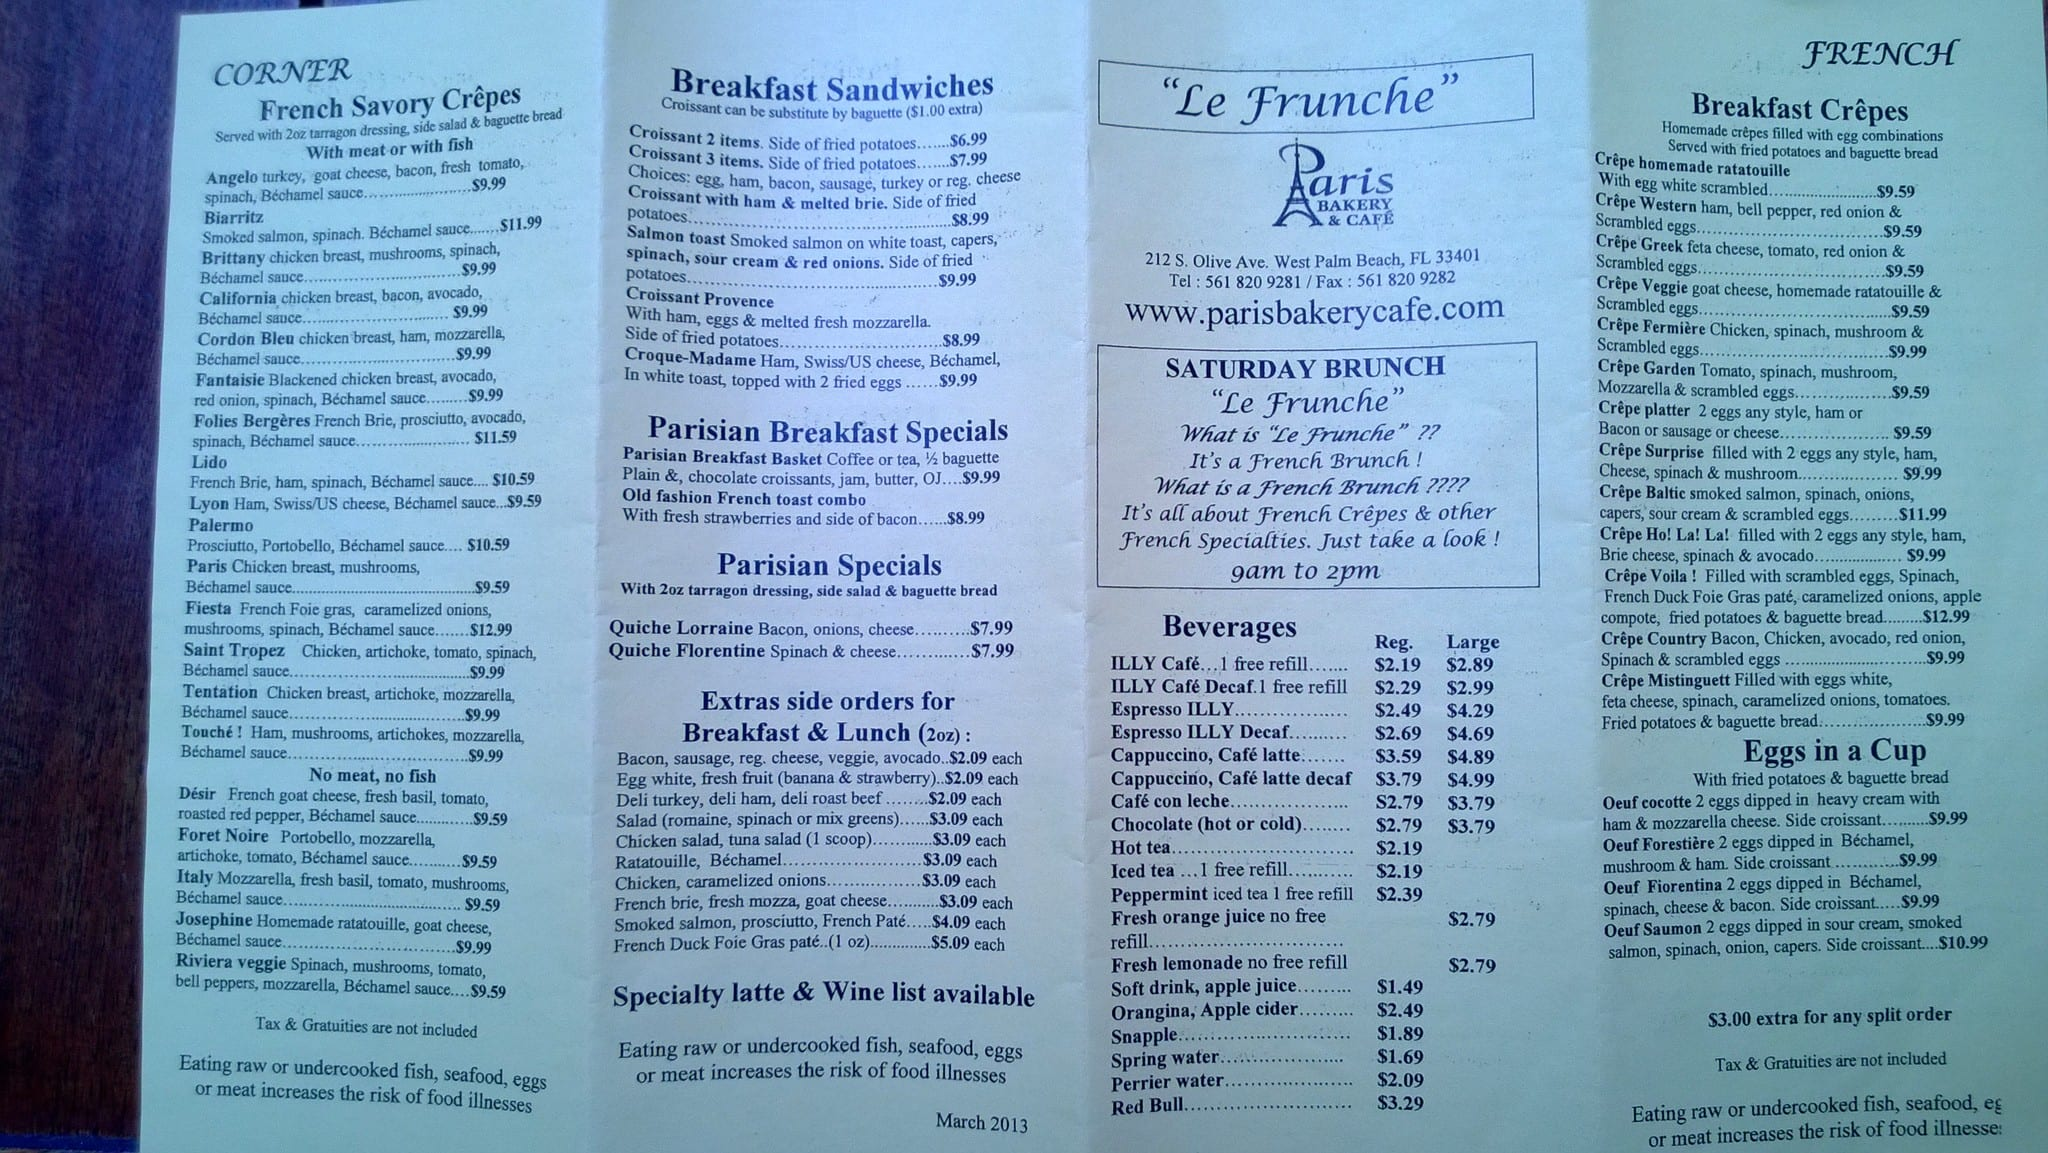 West Palm Beach French Bakery